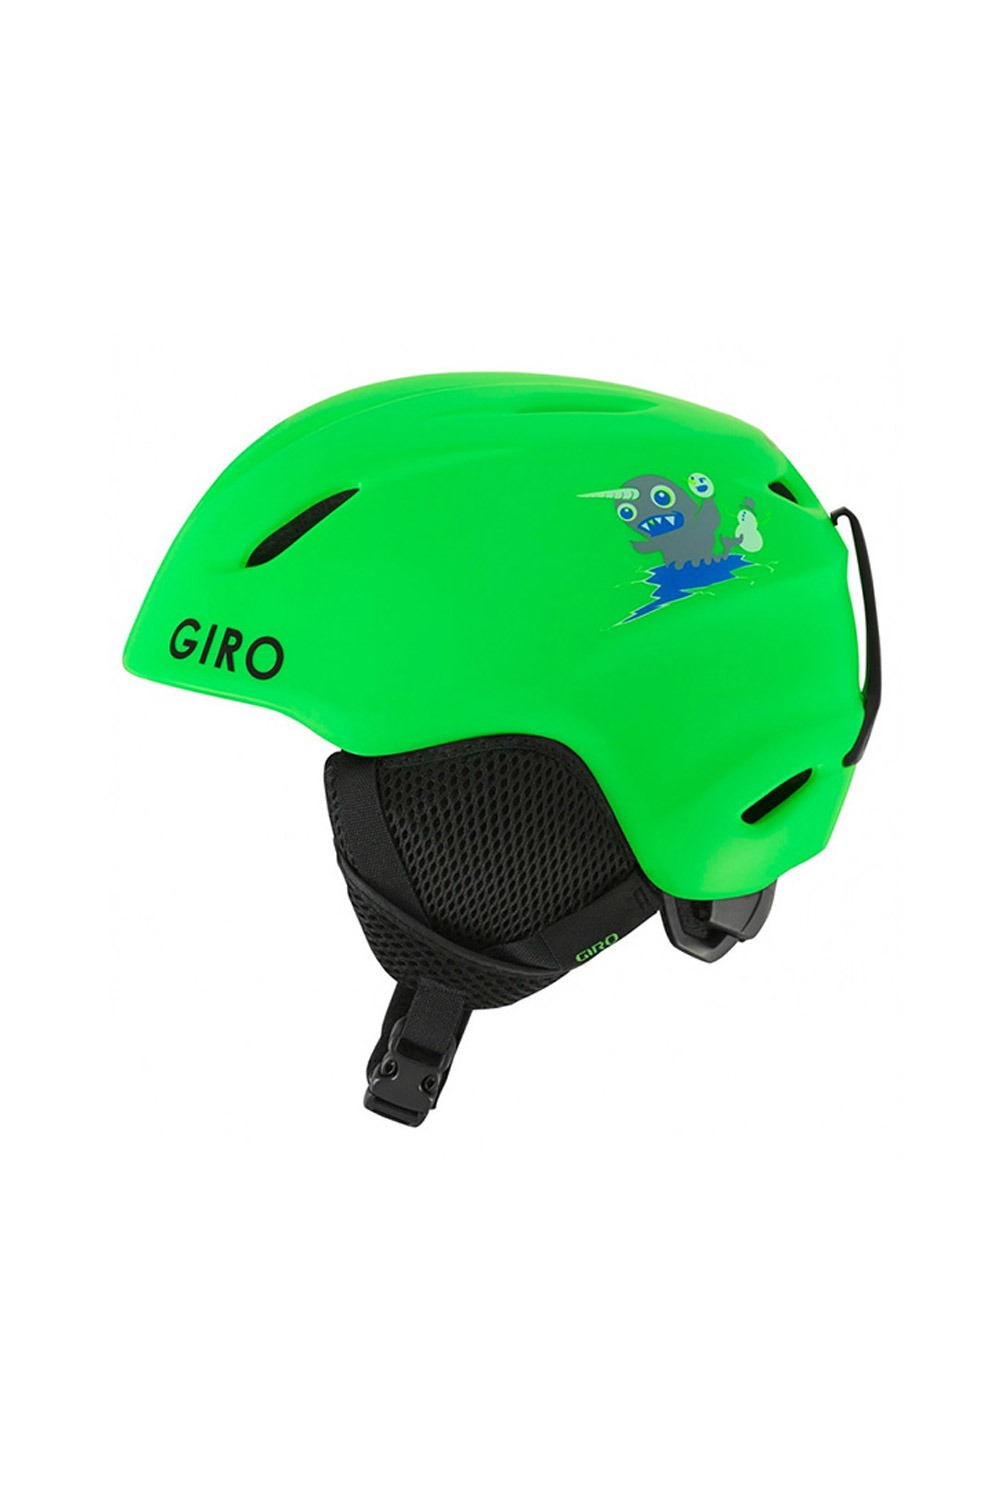 지로 키즈 헬멧 FGO706KX/MATTE BRIGHT GREEN GIRO YOUTH LAUNCH_DFGO706KX